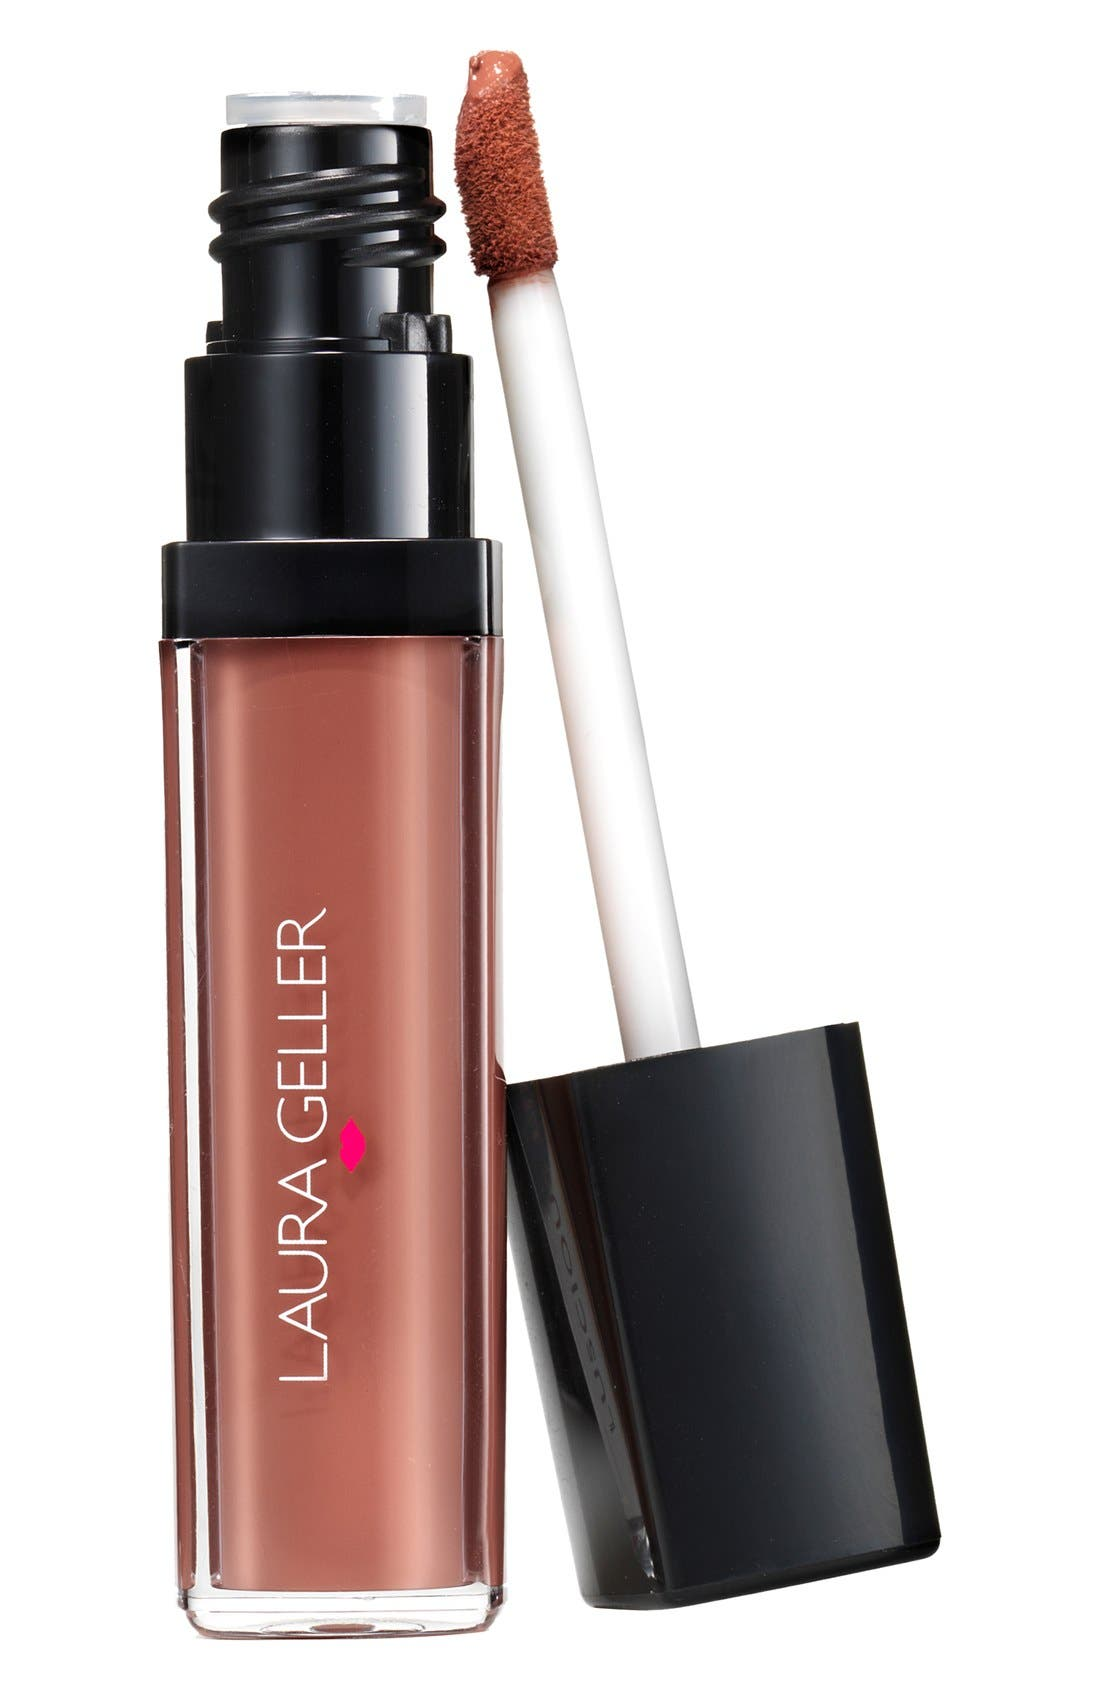 Laura Geller Beauty 'Luscious Lips' Liquid Lipstick